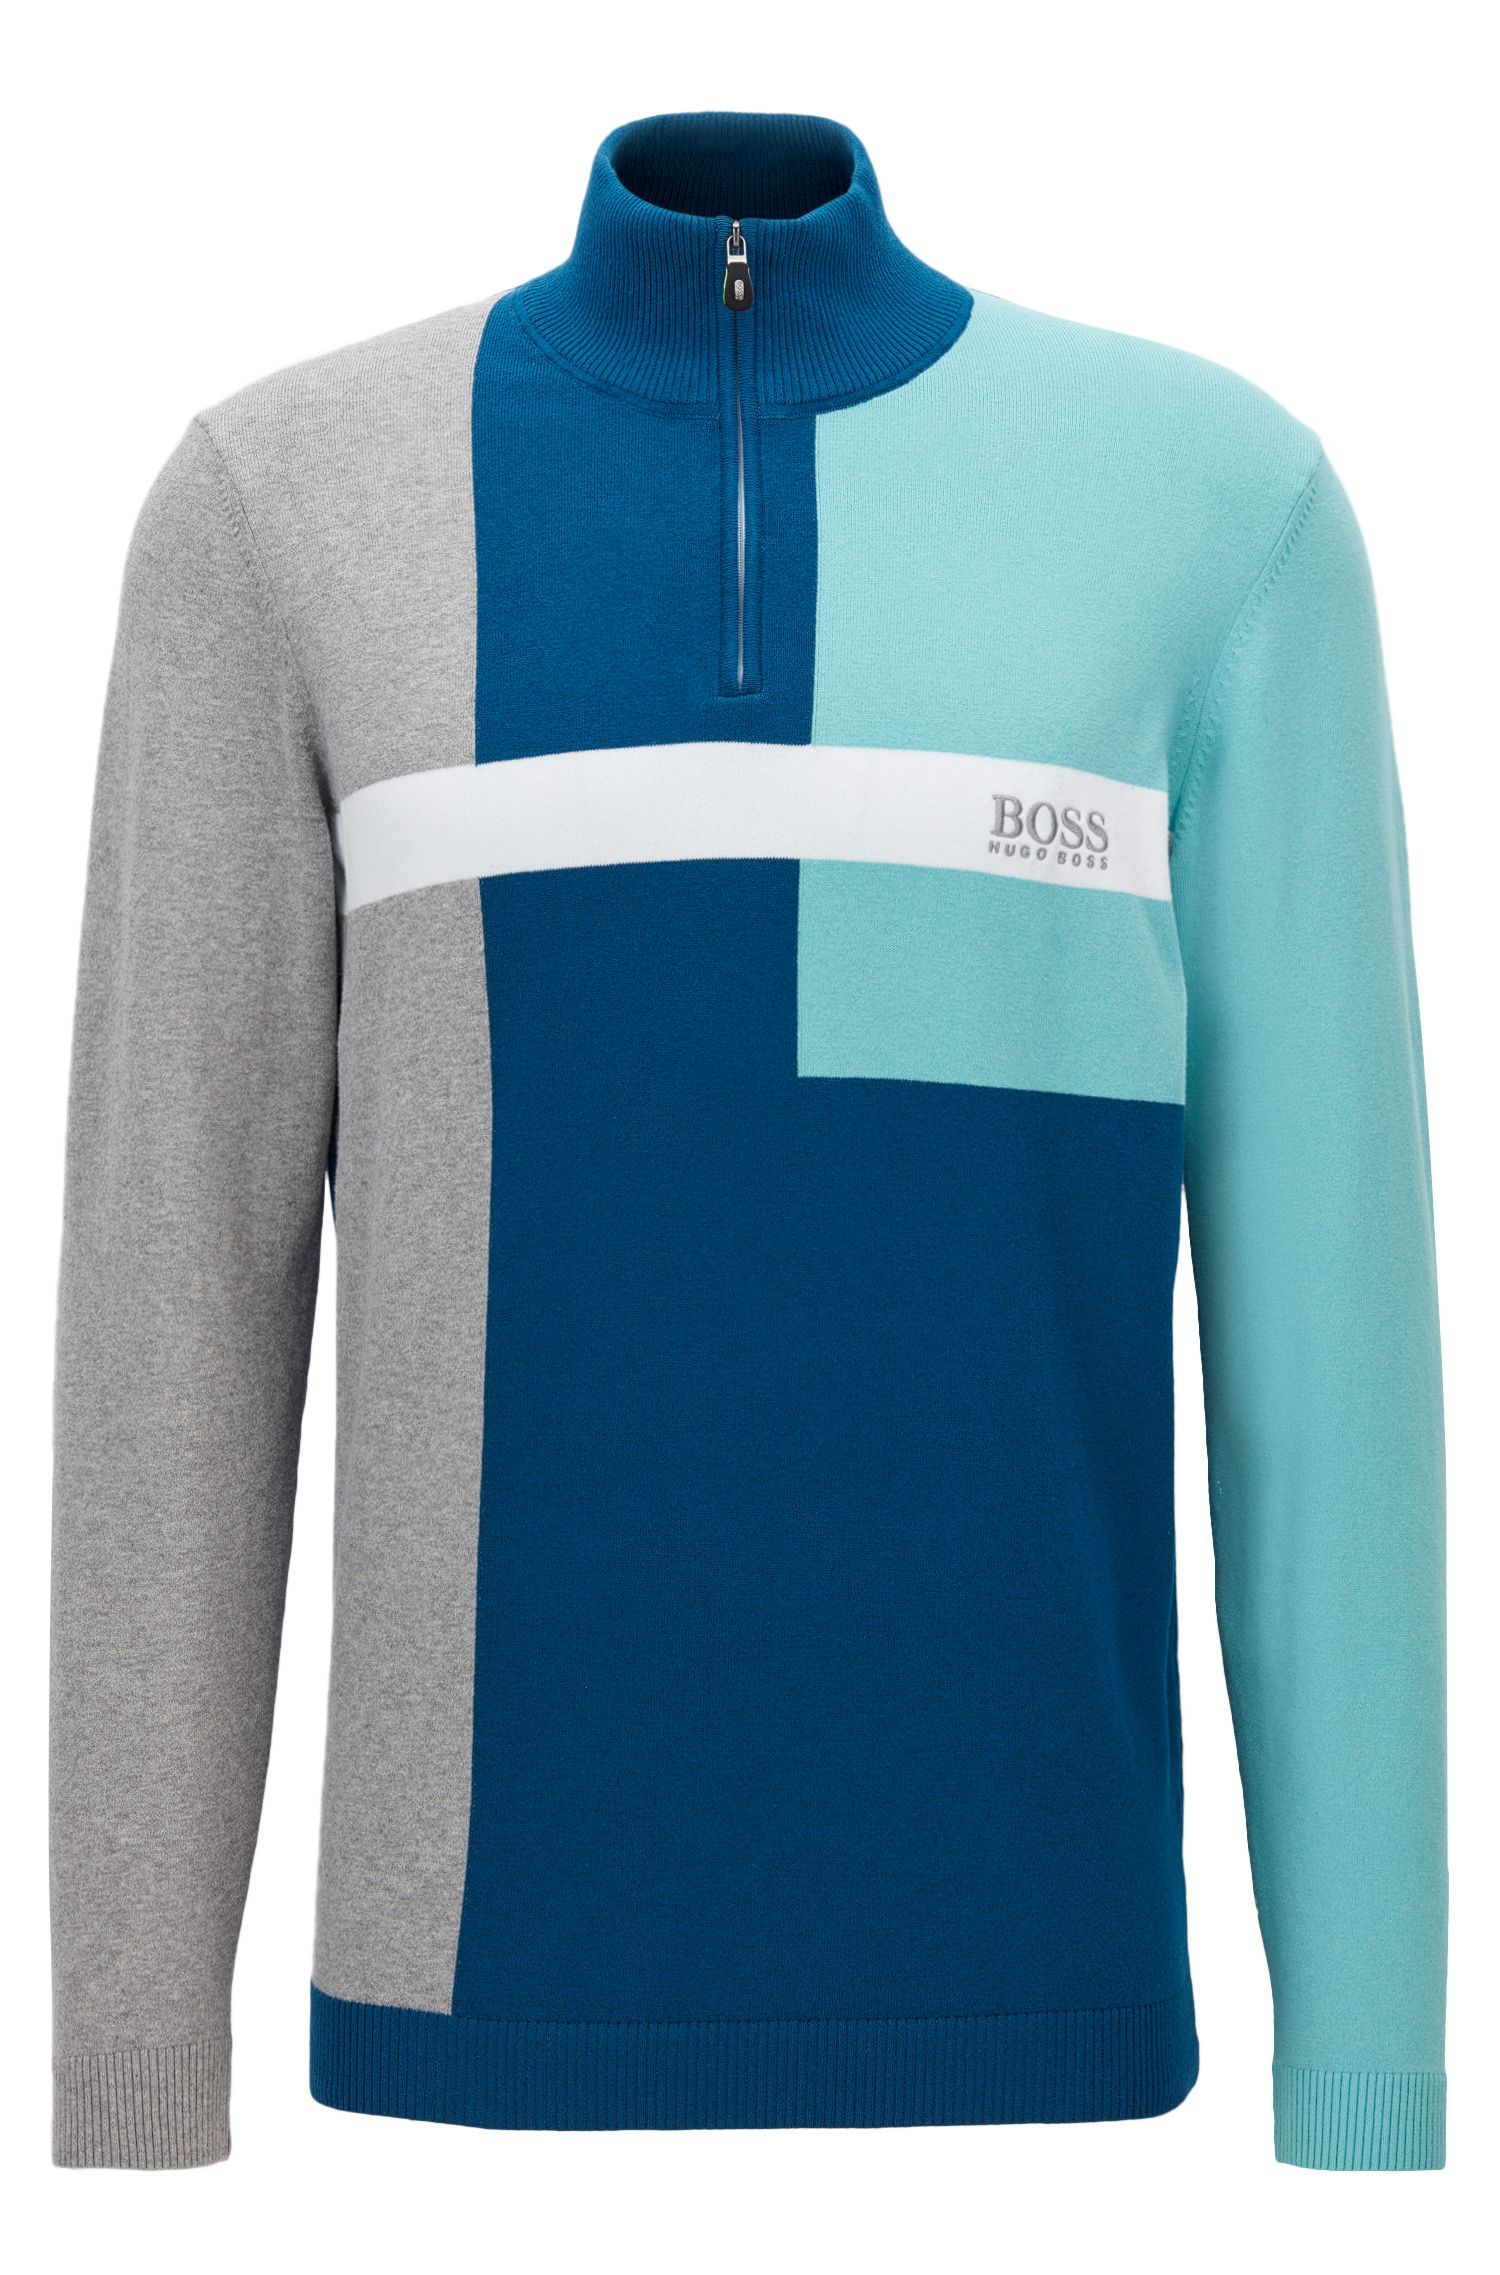 Regular-fit sweater in a stretch cotton blend